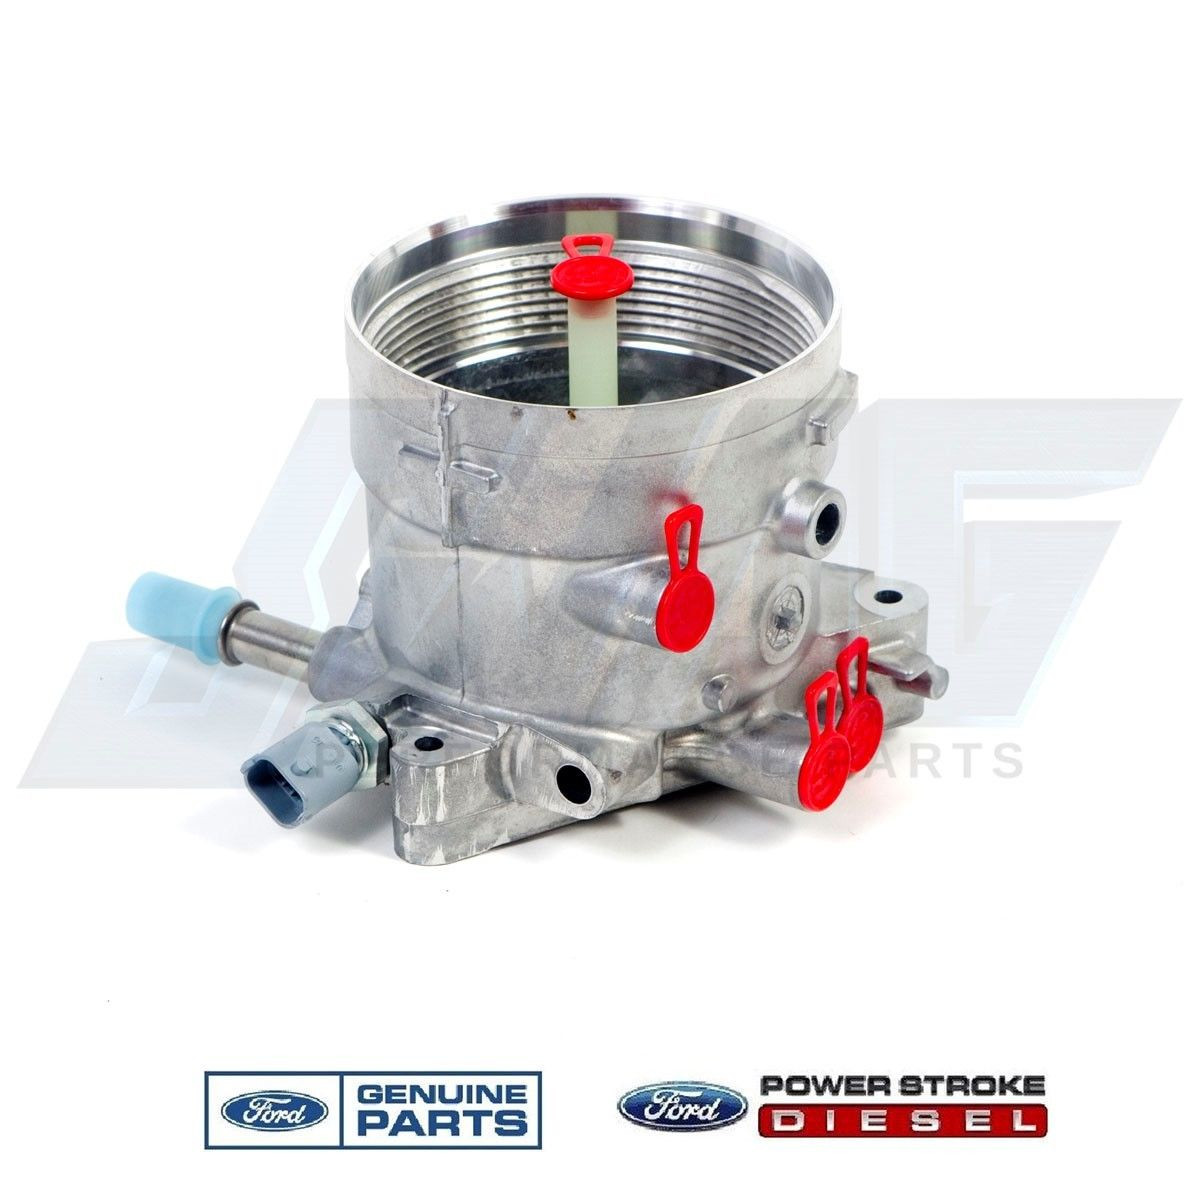 fuel filter housing w/ regulator  image 1